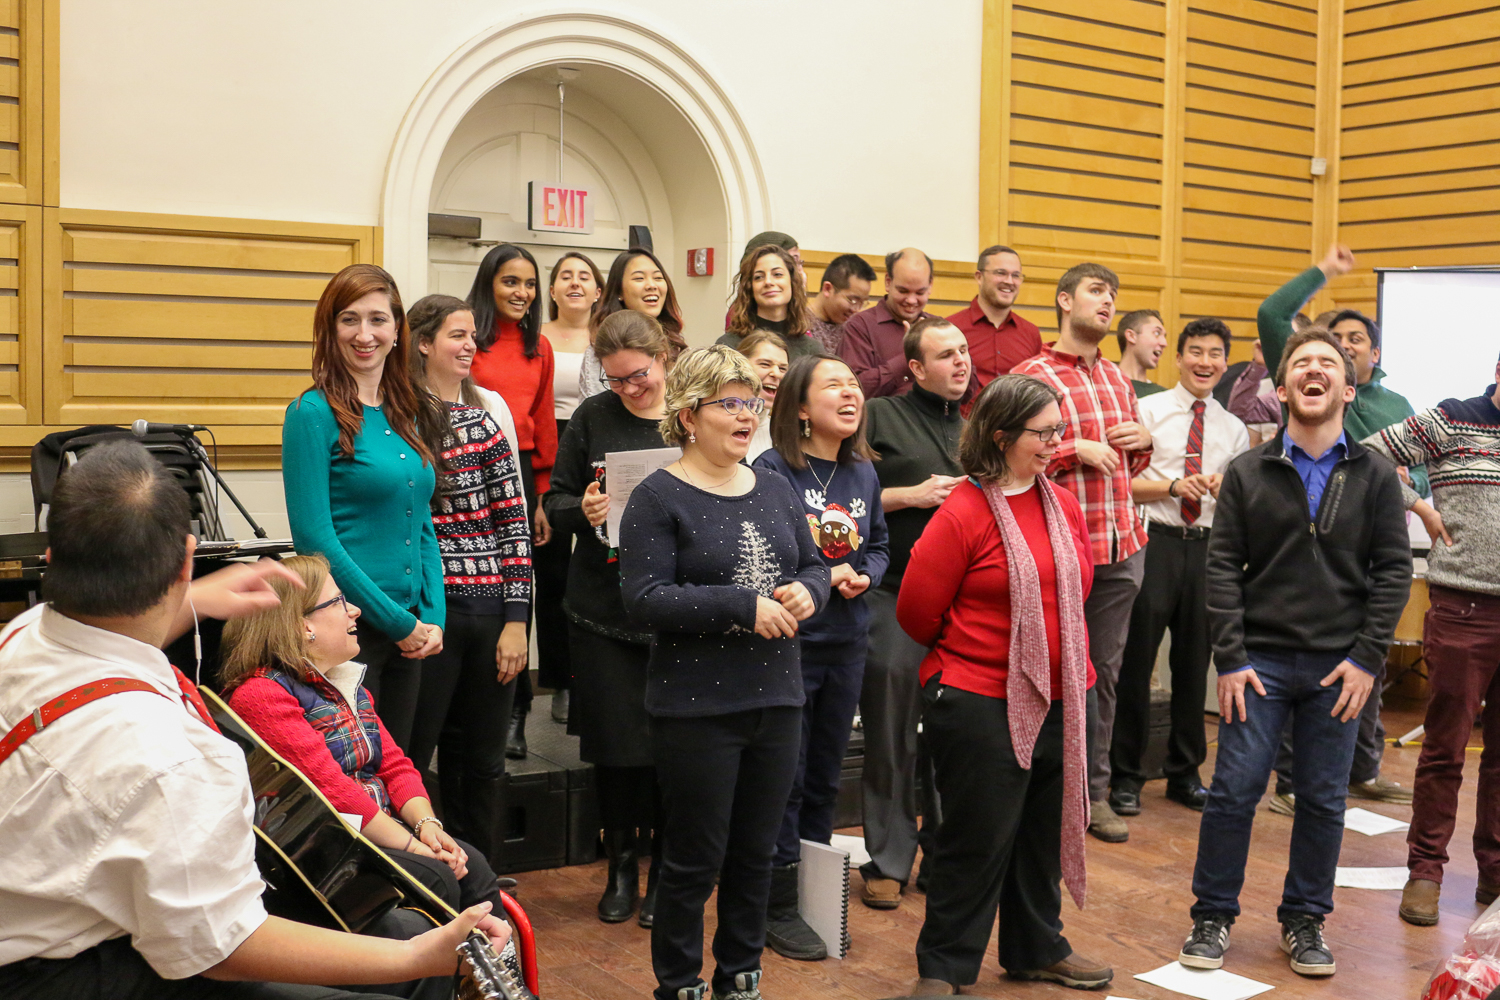 Choir wearing holiday sweaters and singing